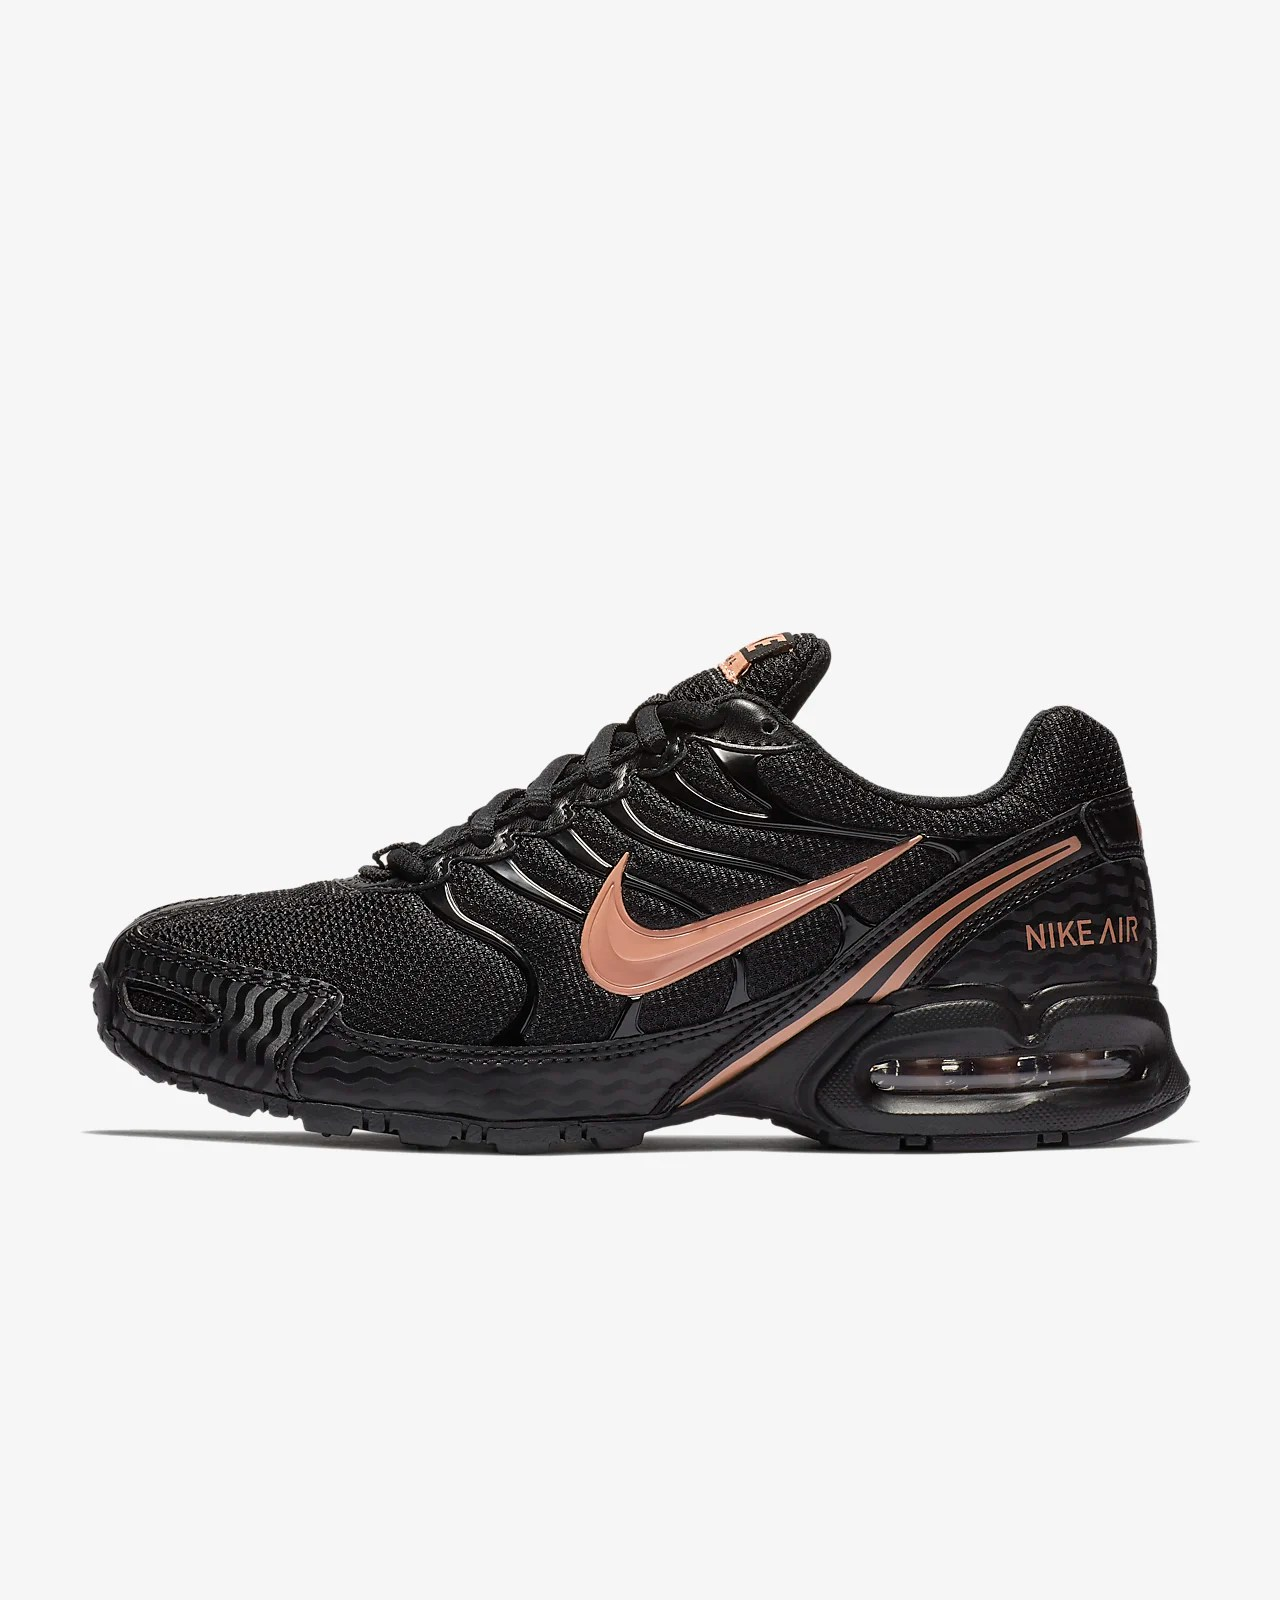 Air Max Running Nike Air Max Torch 4 Women S Running Shoe